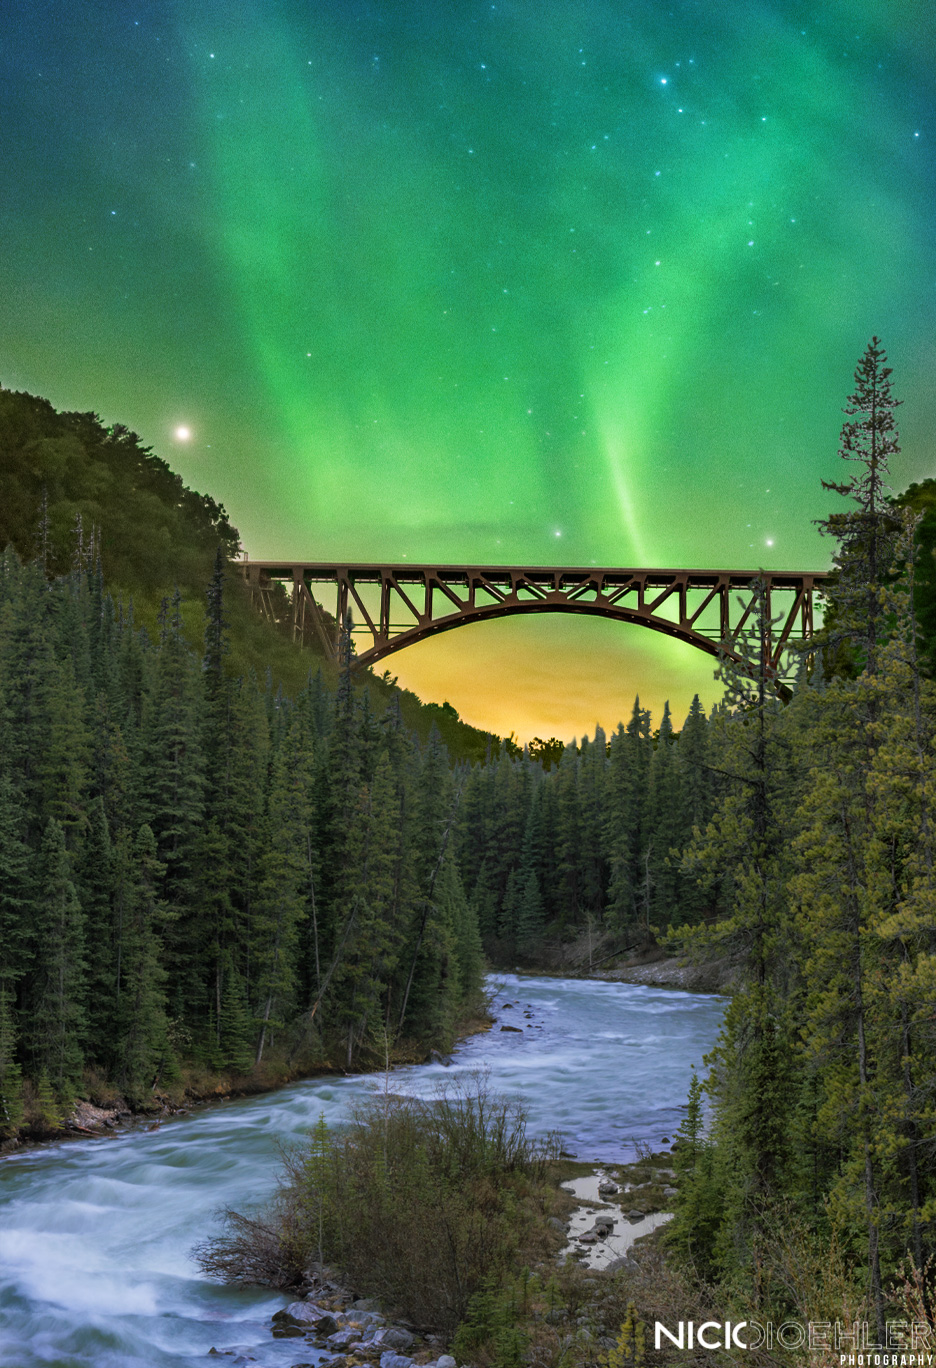 Bridge to the Lights - This image was created to incorporate Northern Lights I was able to capture in Iceland. Then to have them placed about a gorgeous bridge that is in New York.